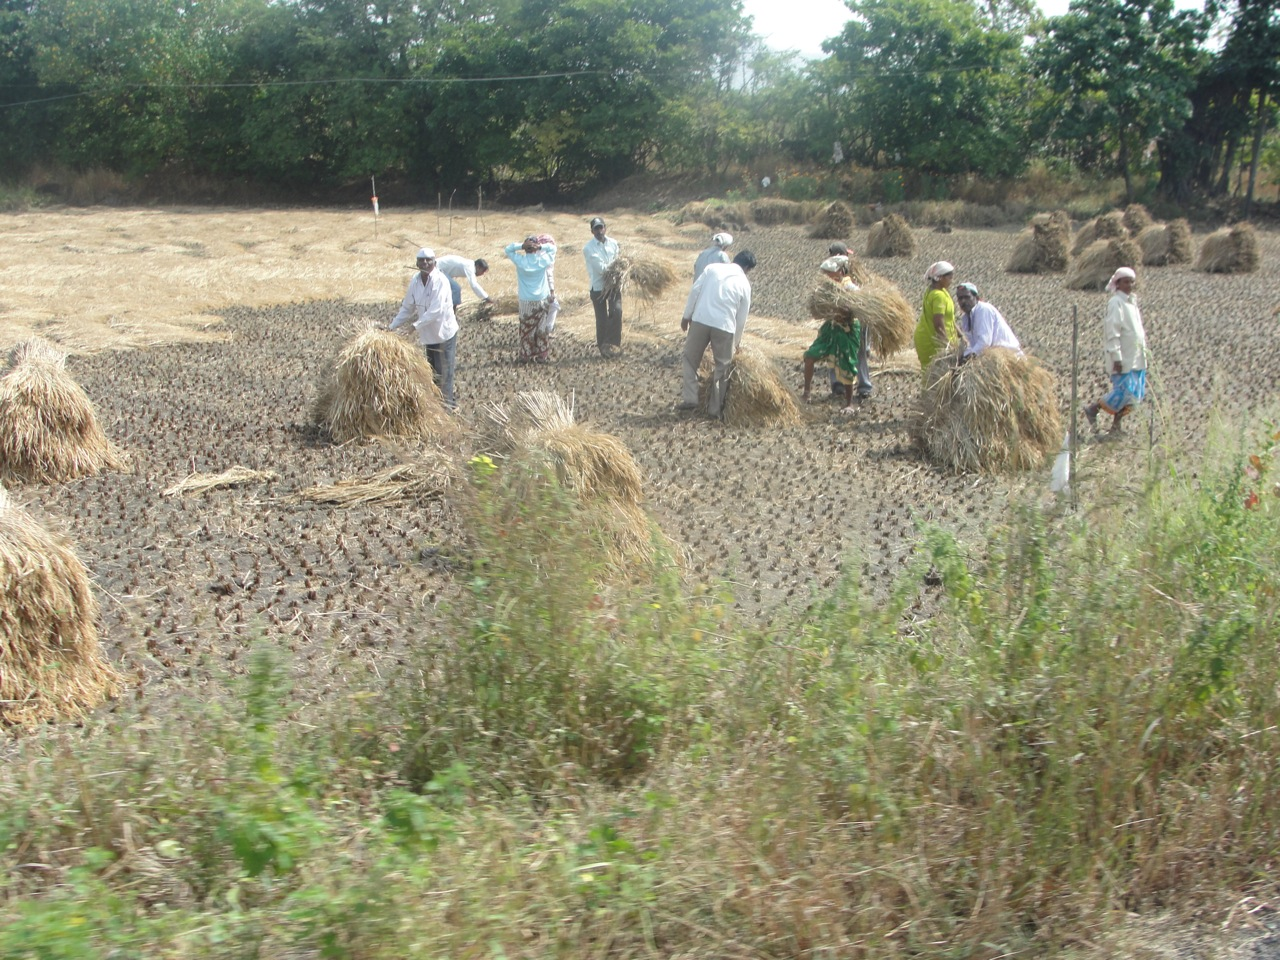 Workers harvesting rice with sickles.